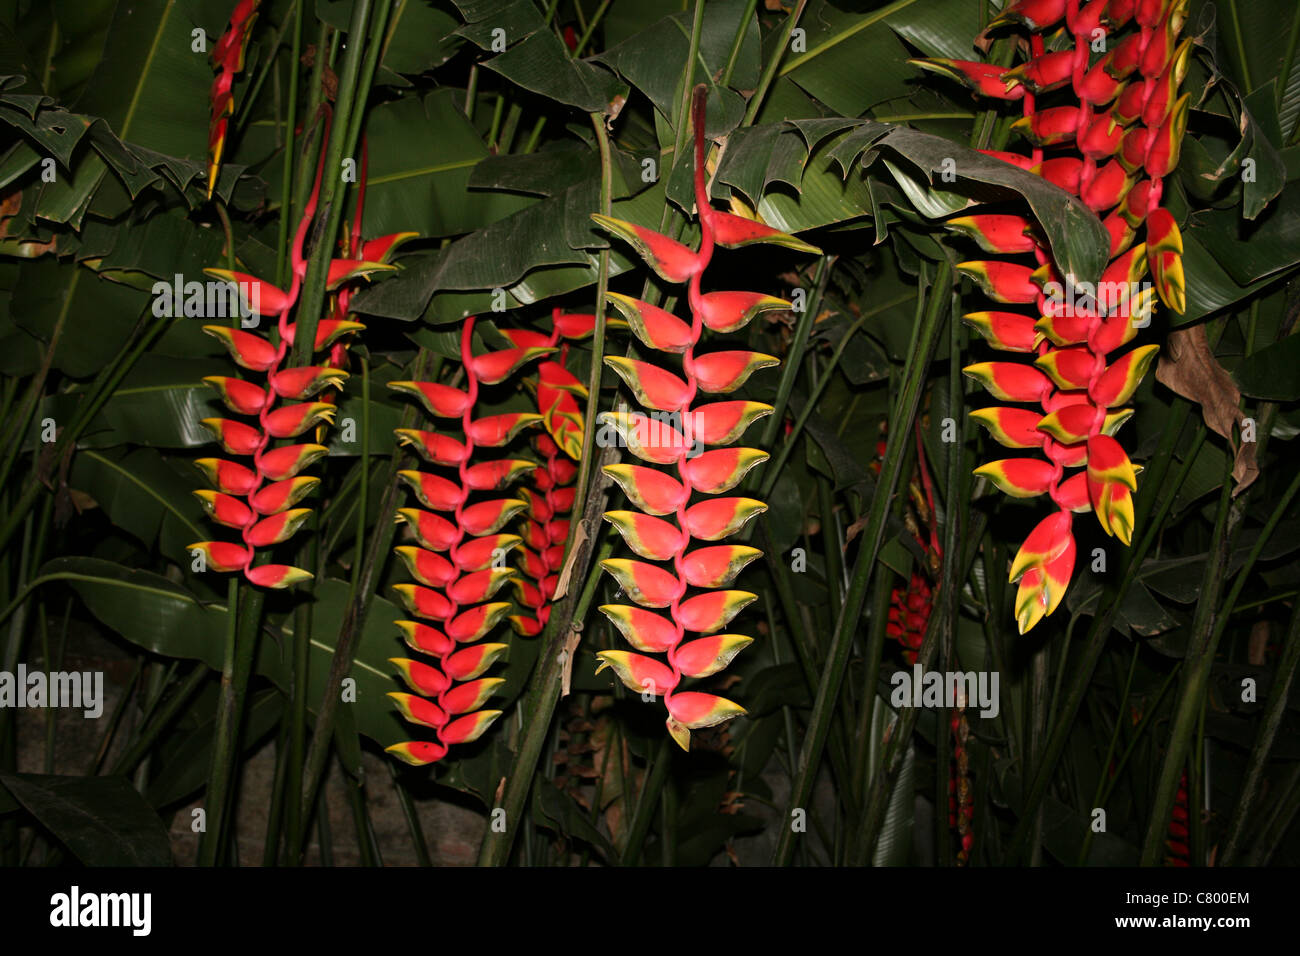 Lobster Claw Plant Heliconia pendula - Stock Image